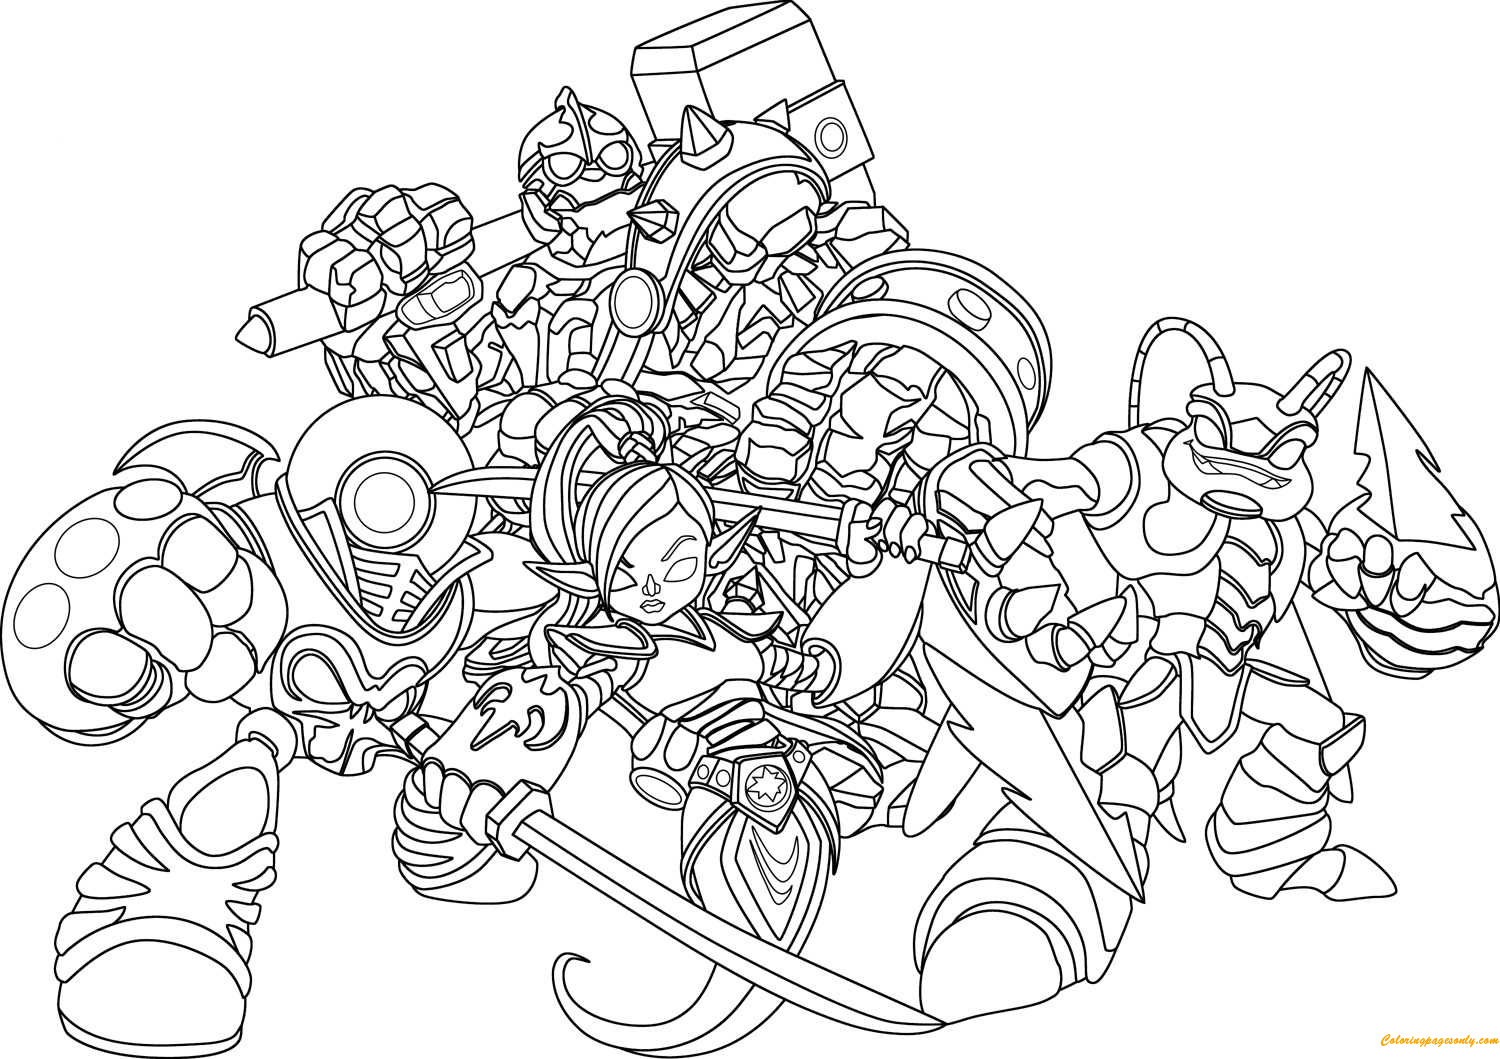 Anime Skylanders Coloring Page Free Coloring Pages Online